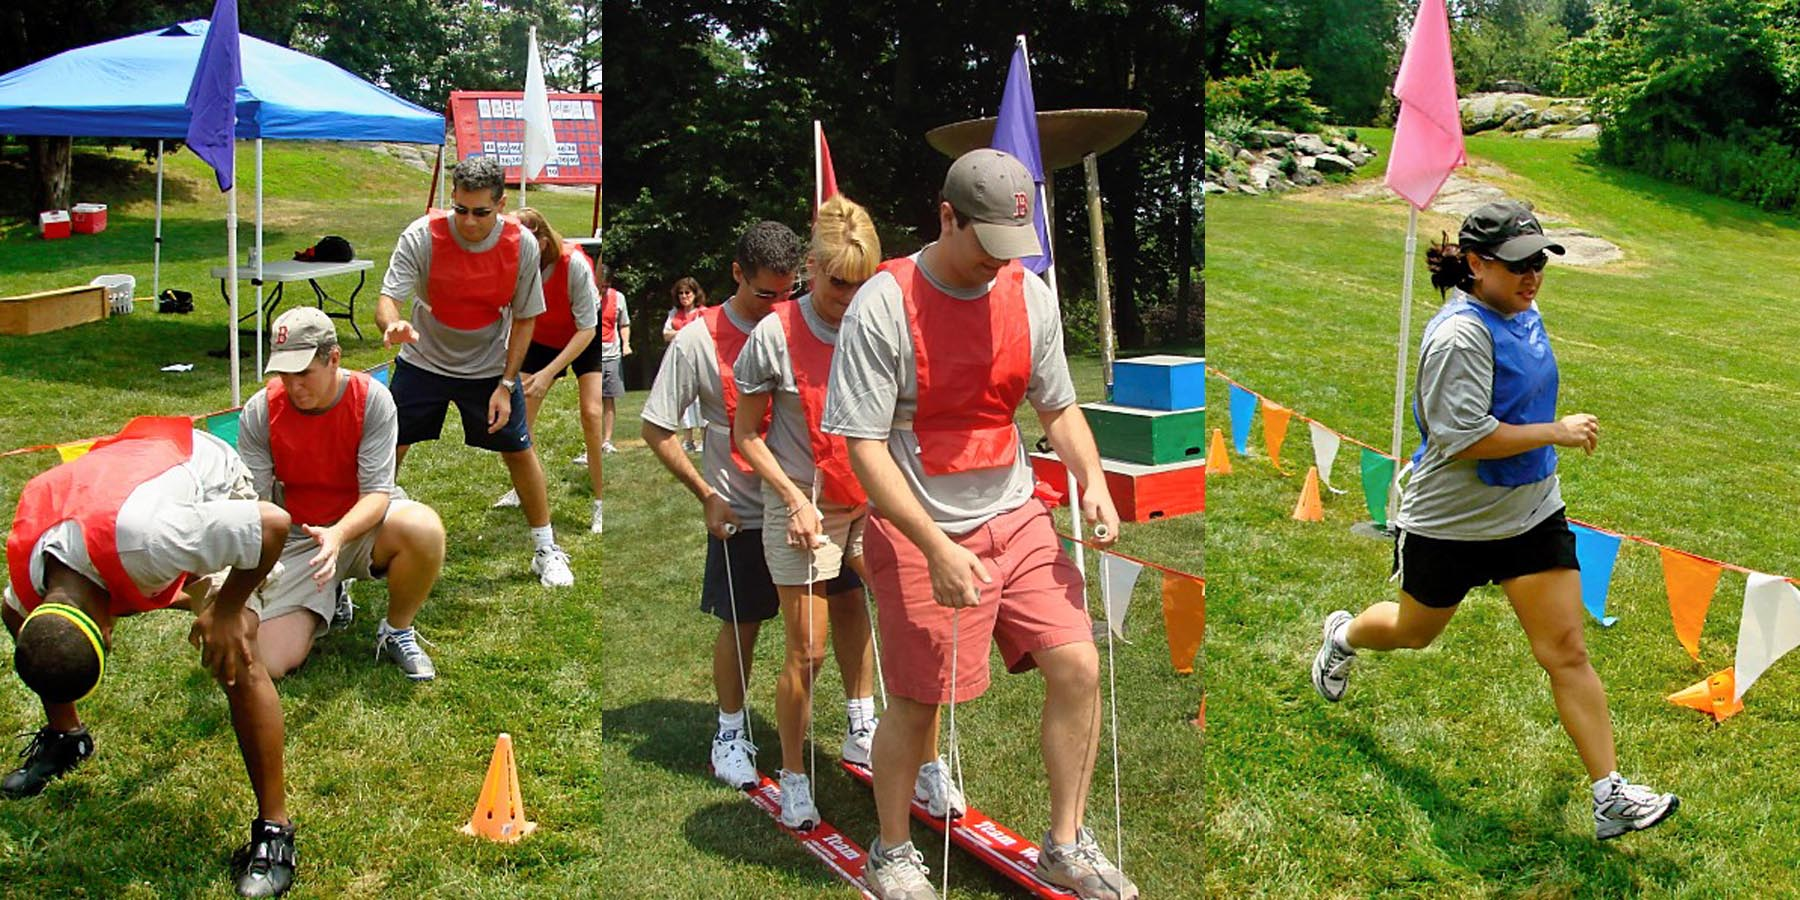 Various groups and individuals competing in the obstacle courses for Outrageous games